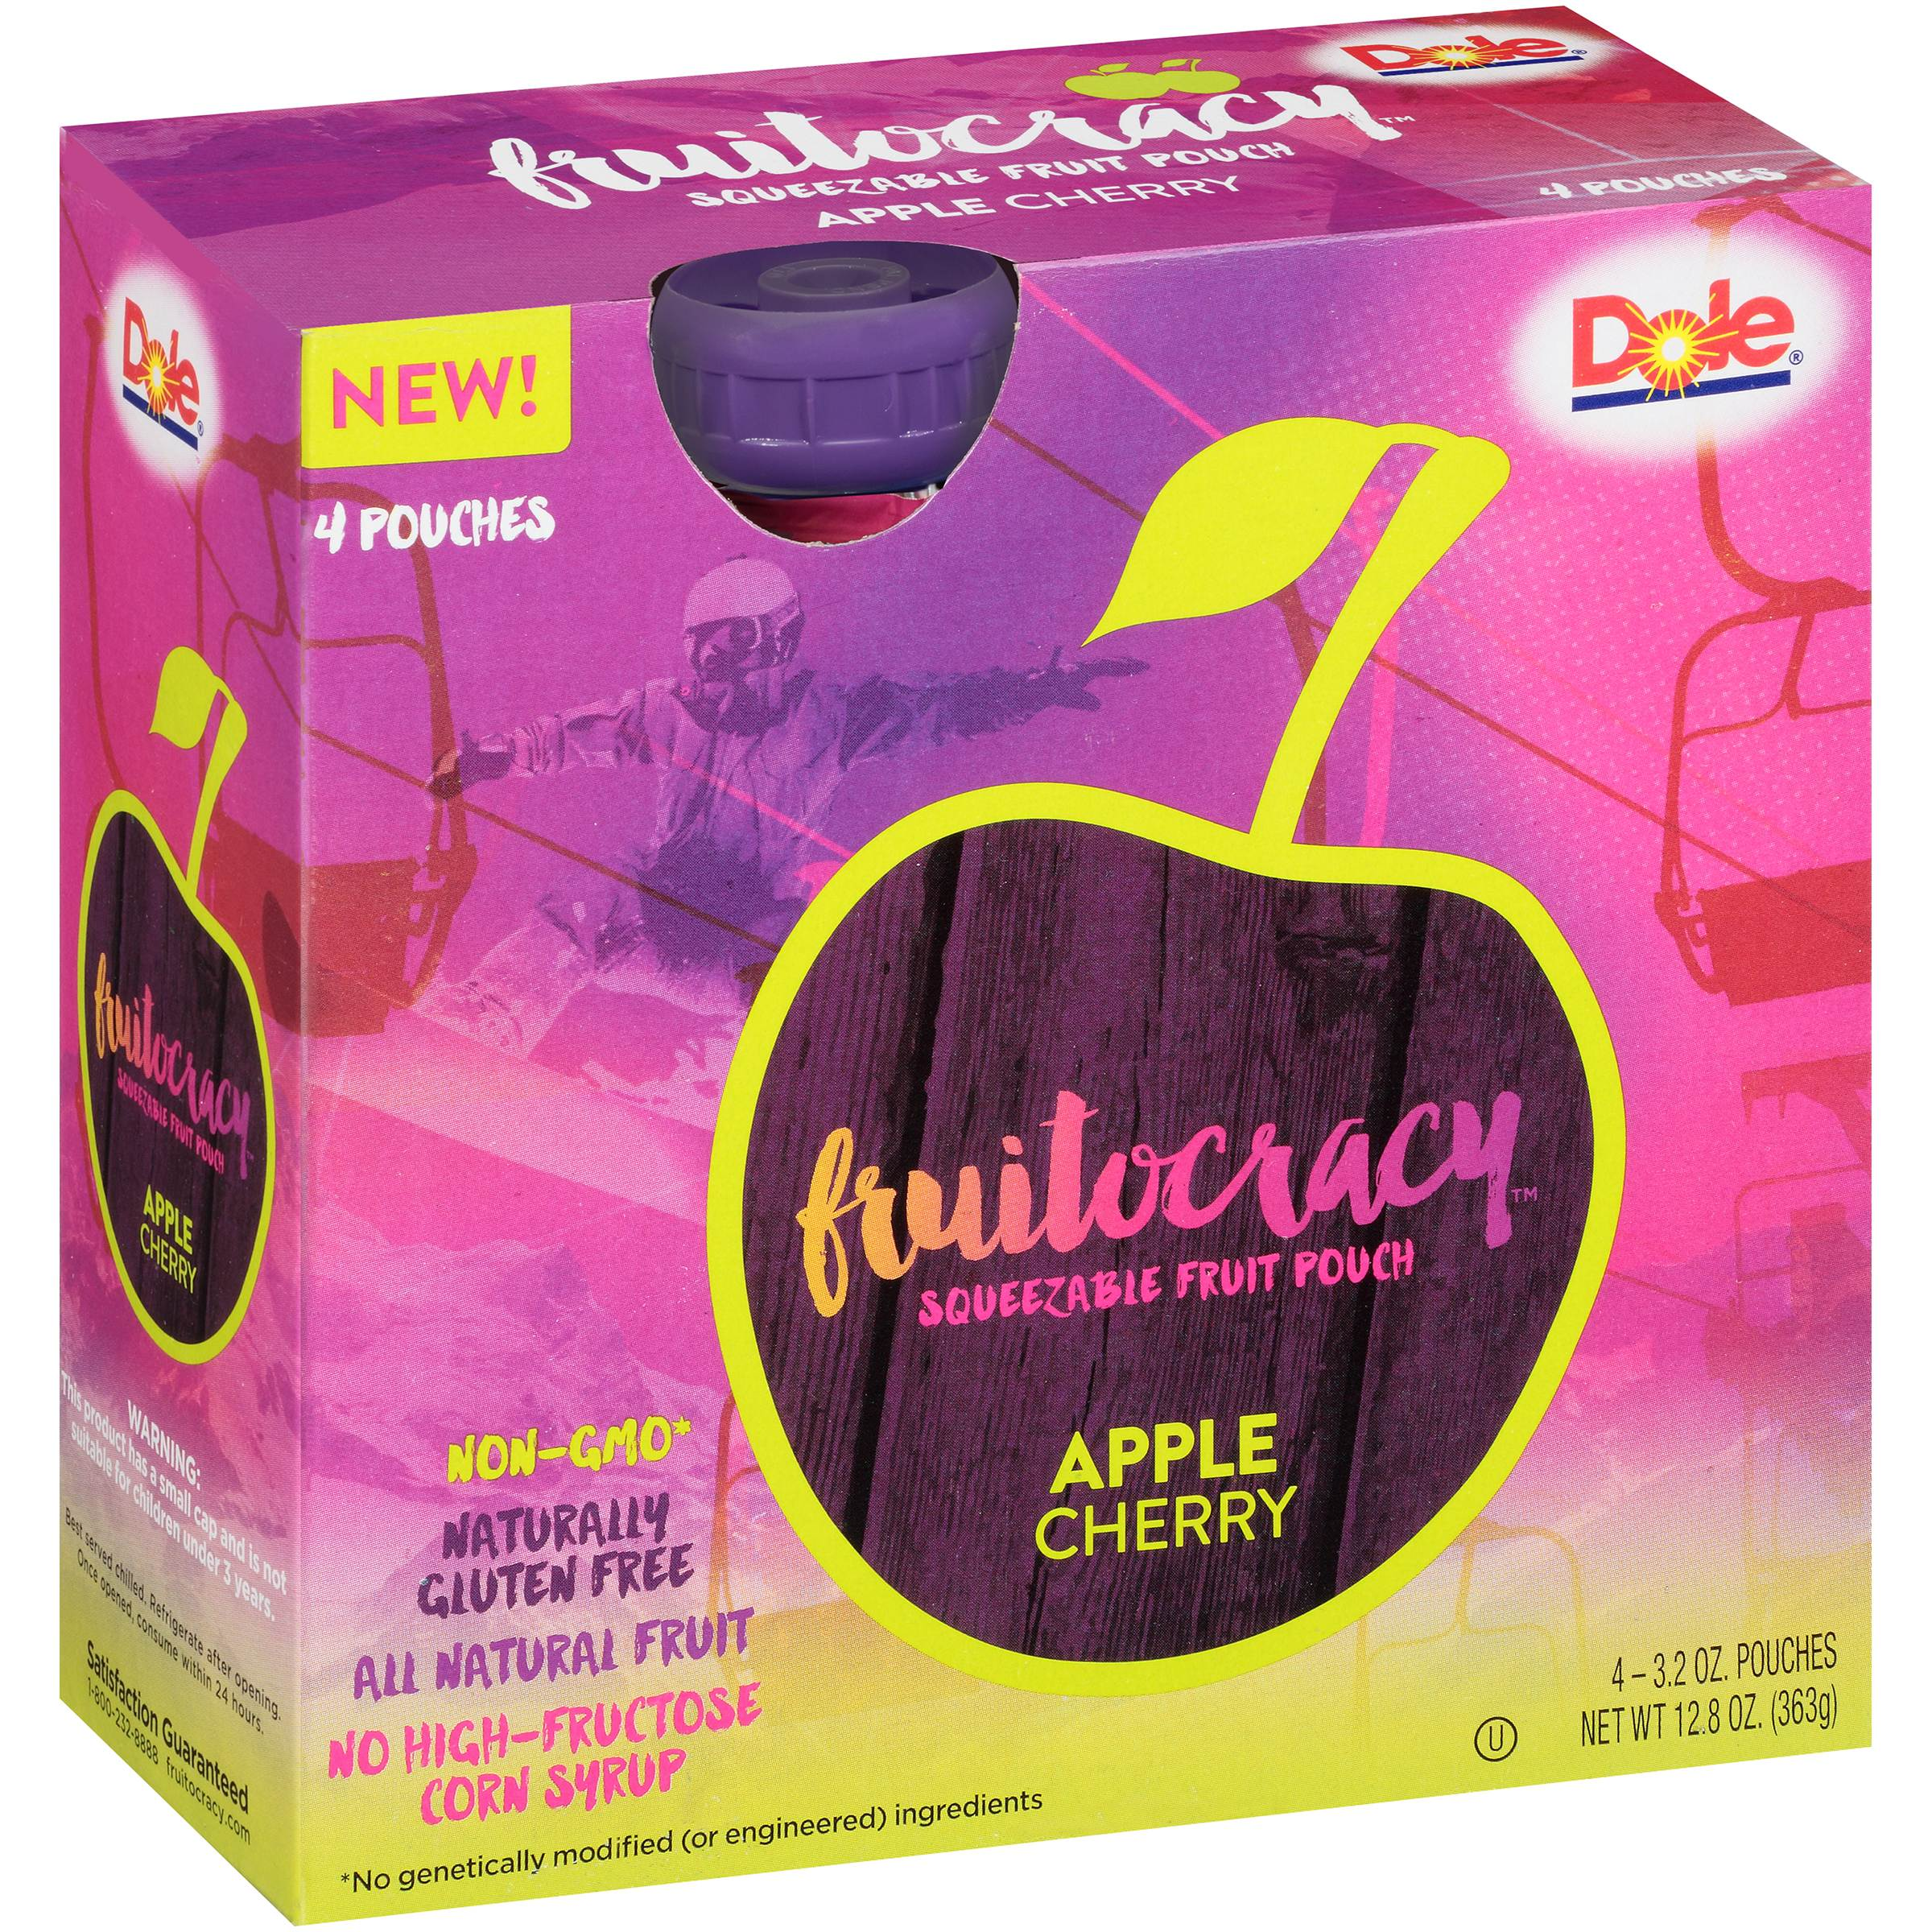 Dole® Fruitocracy™ Apple Cherry Squeezable Fruit 4-3.2 oz. Pouches